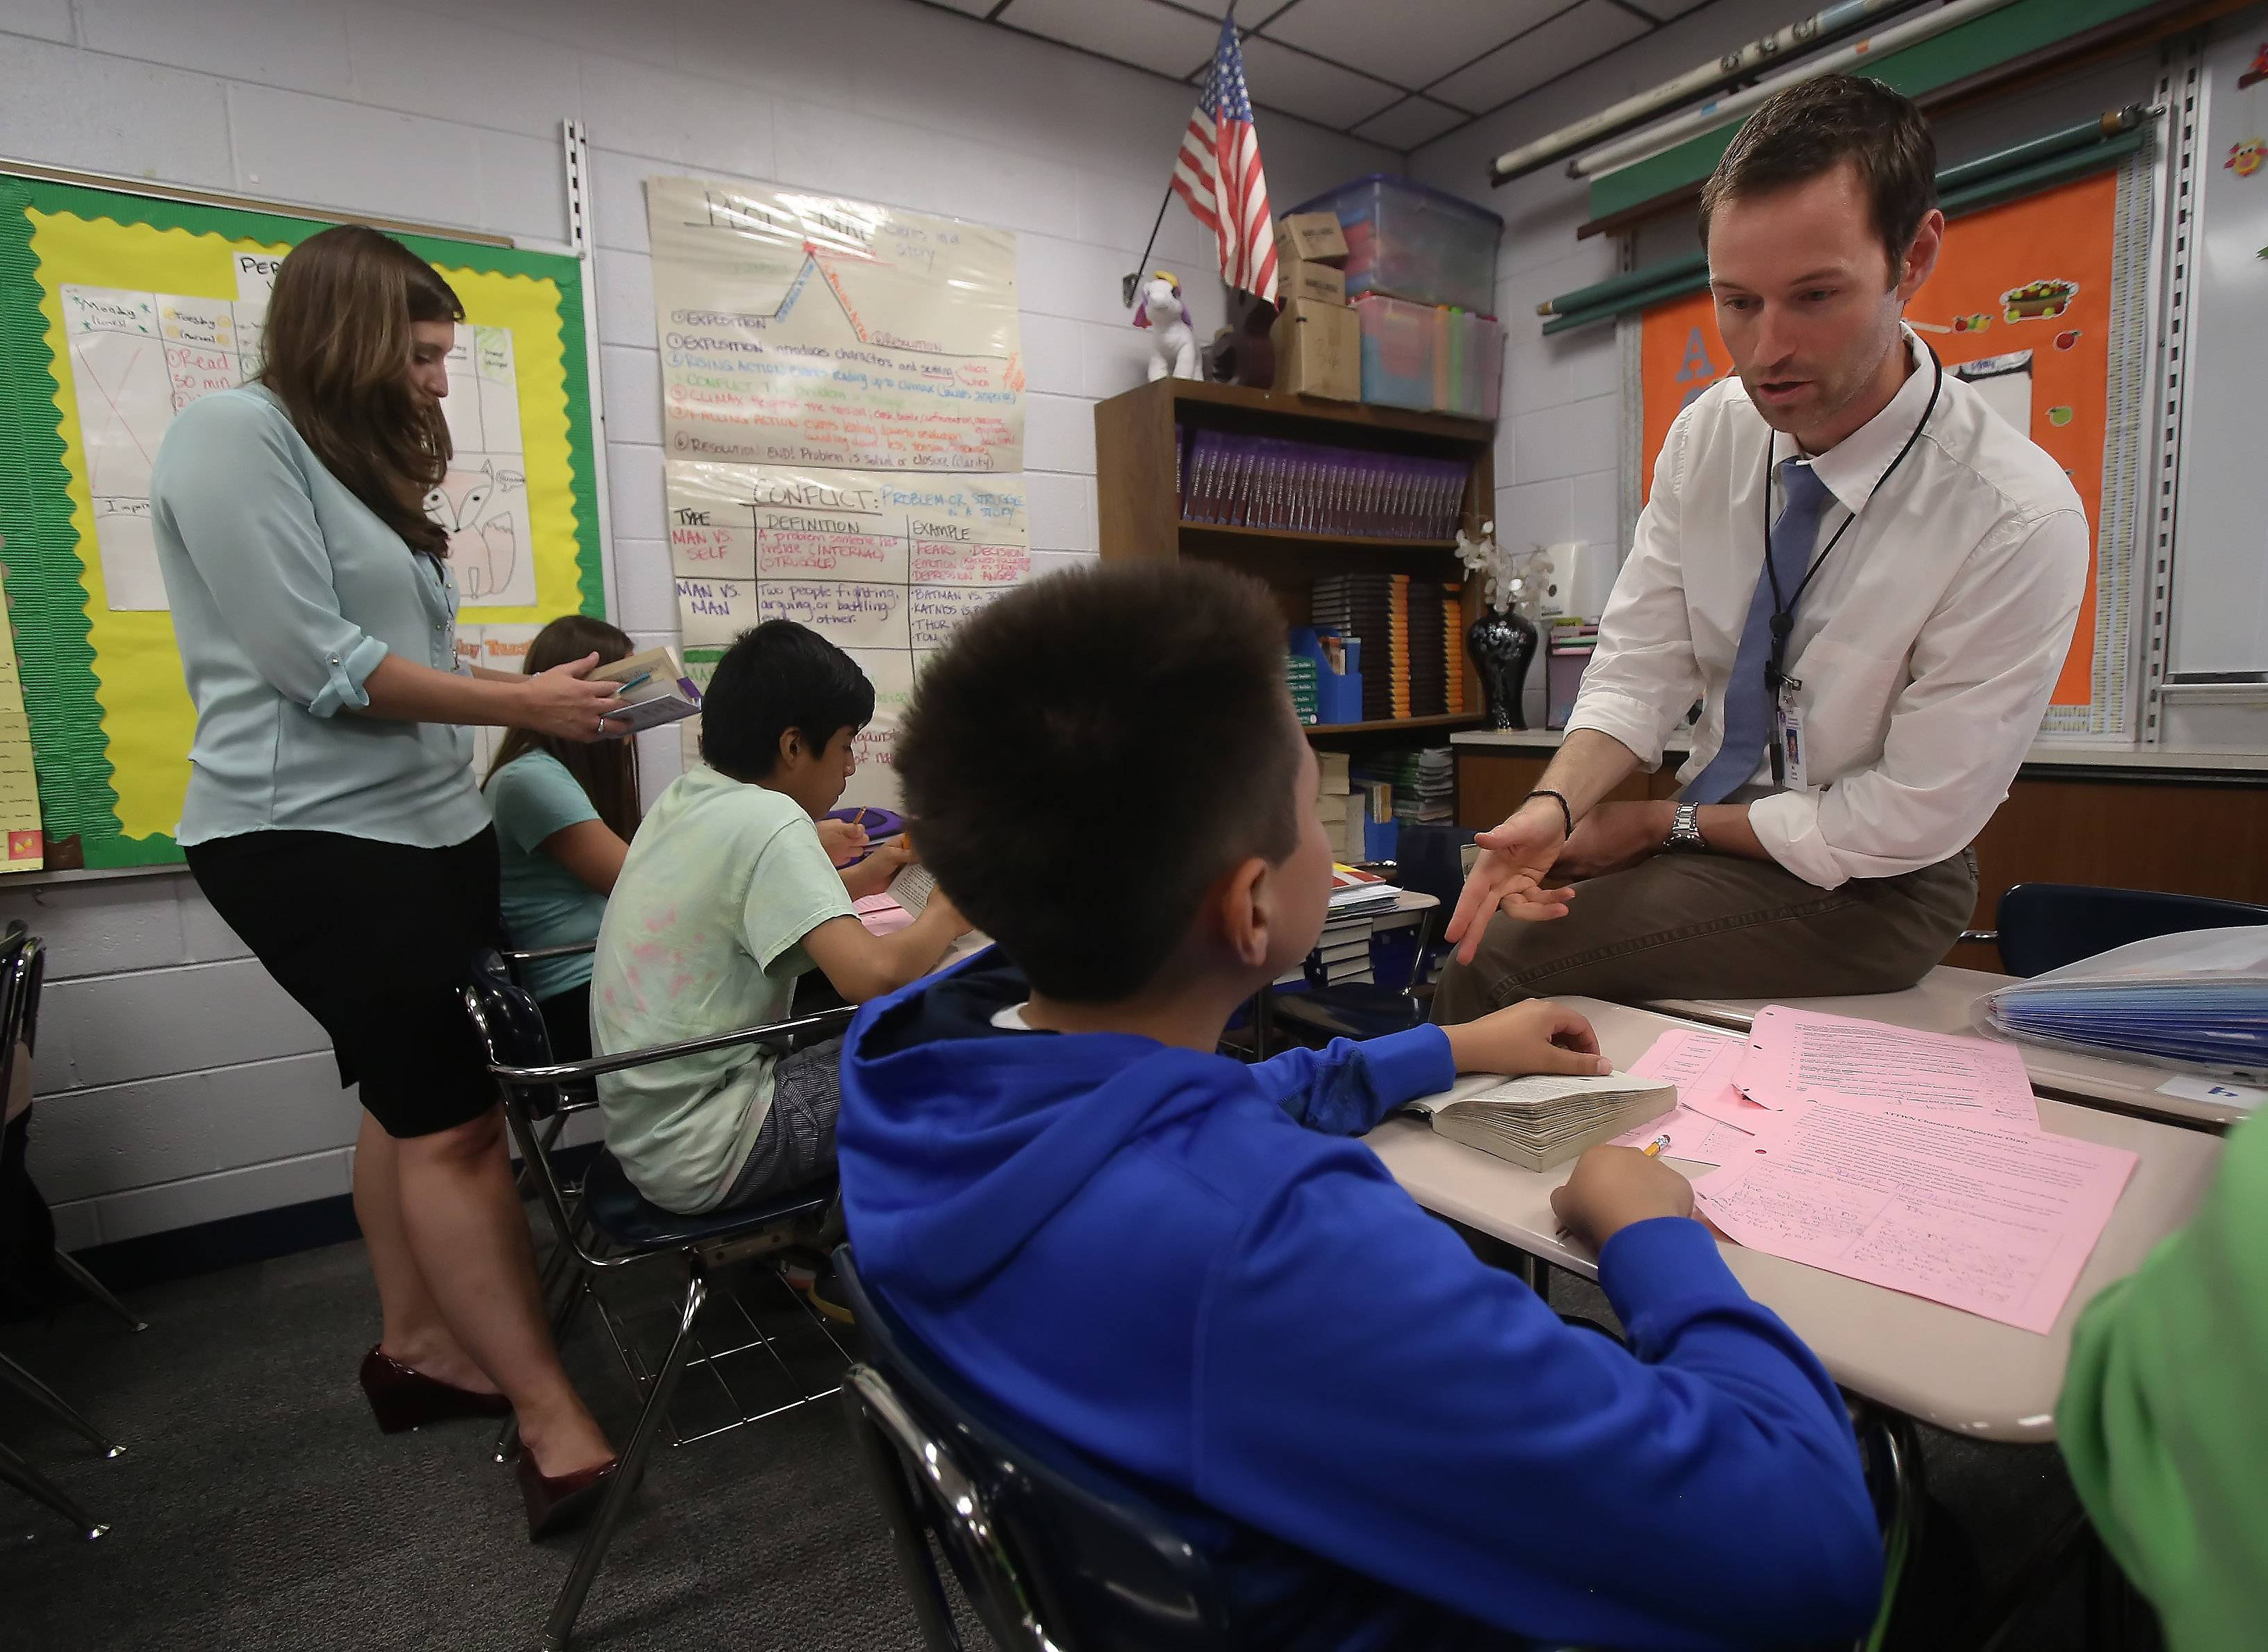 Natalie Saia and Tony Leva team up to teach seventh-grade language arts at Walter Sundling Junior High in Palatine.